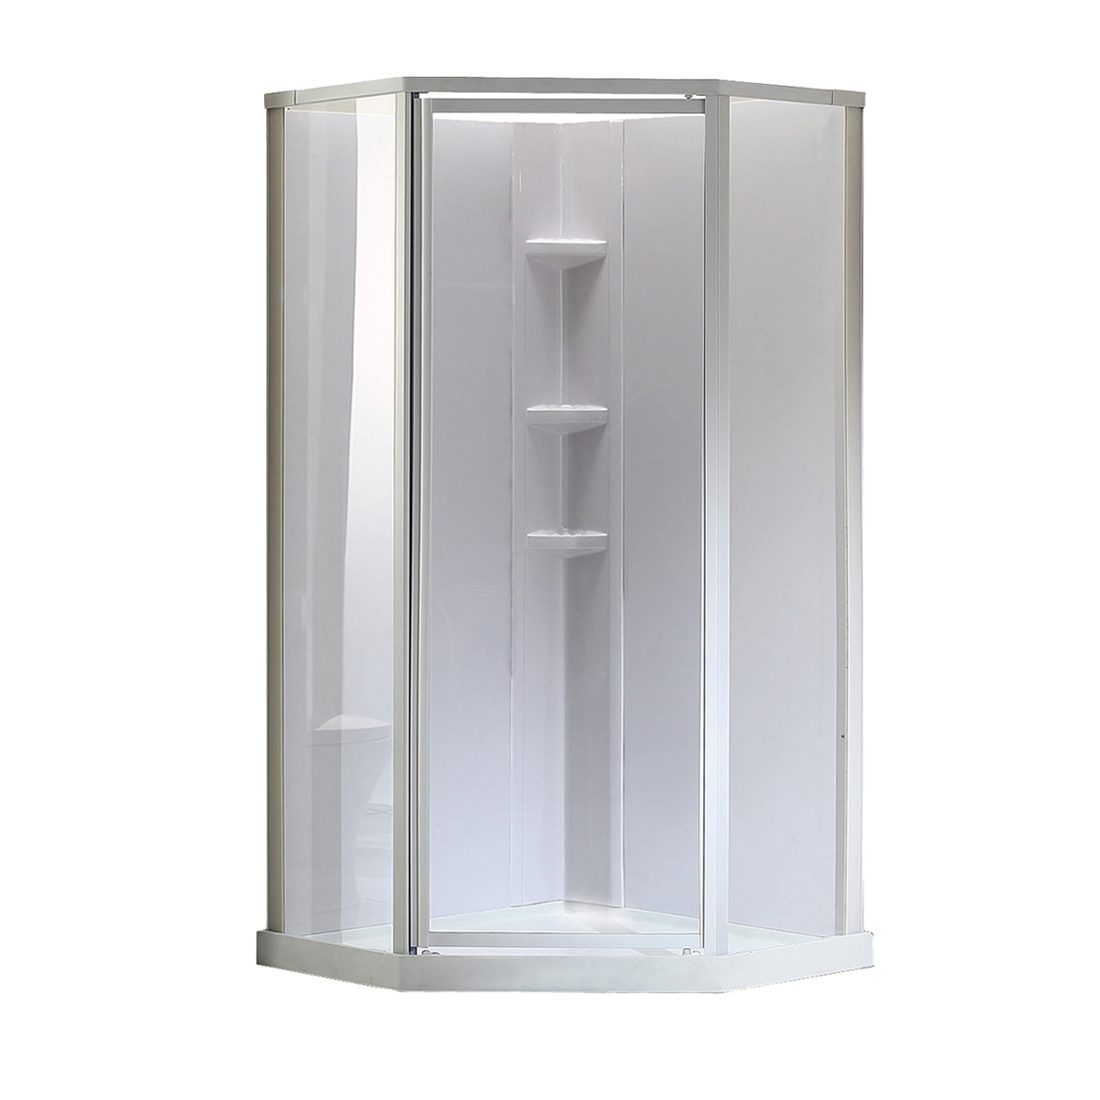 Edinburgh Shower Center 38inch Front View